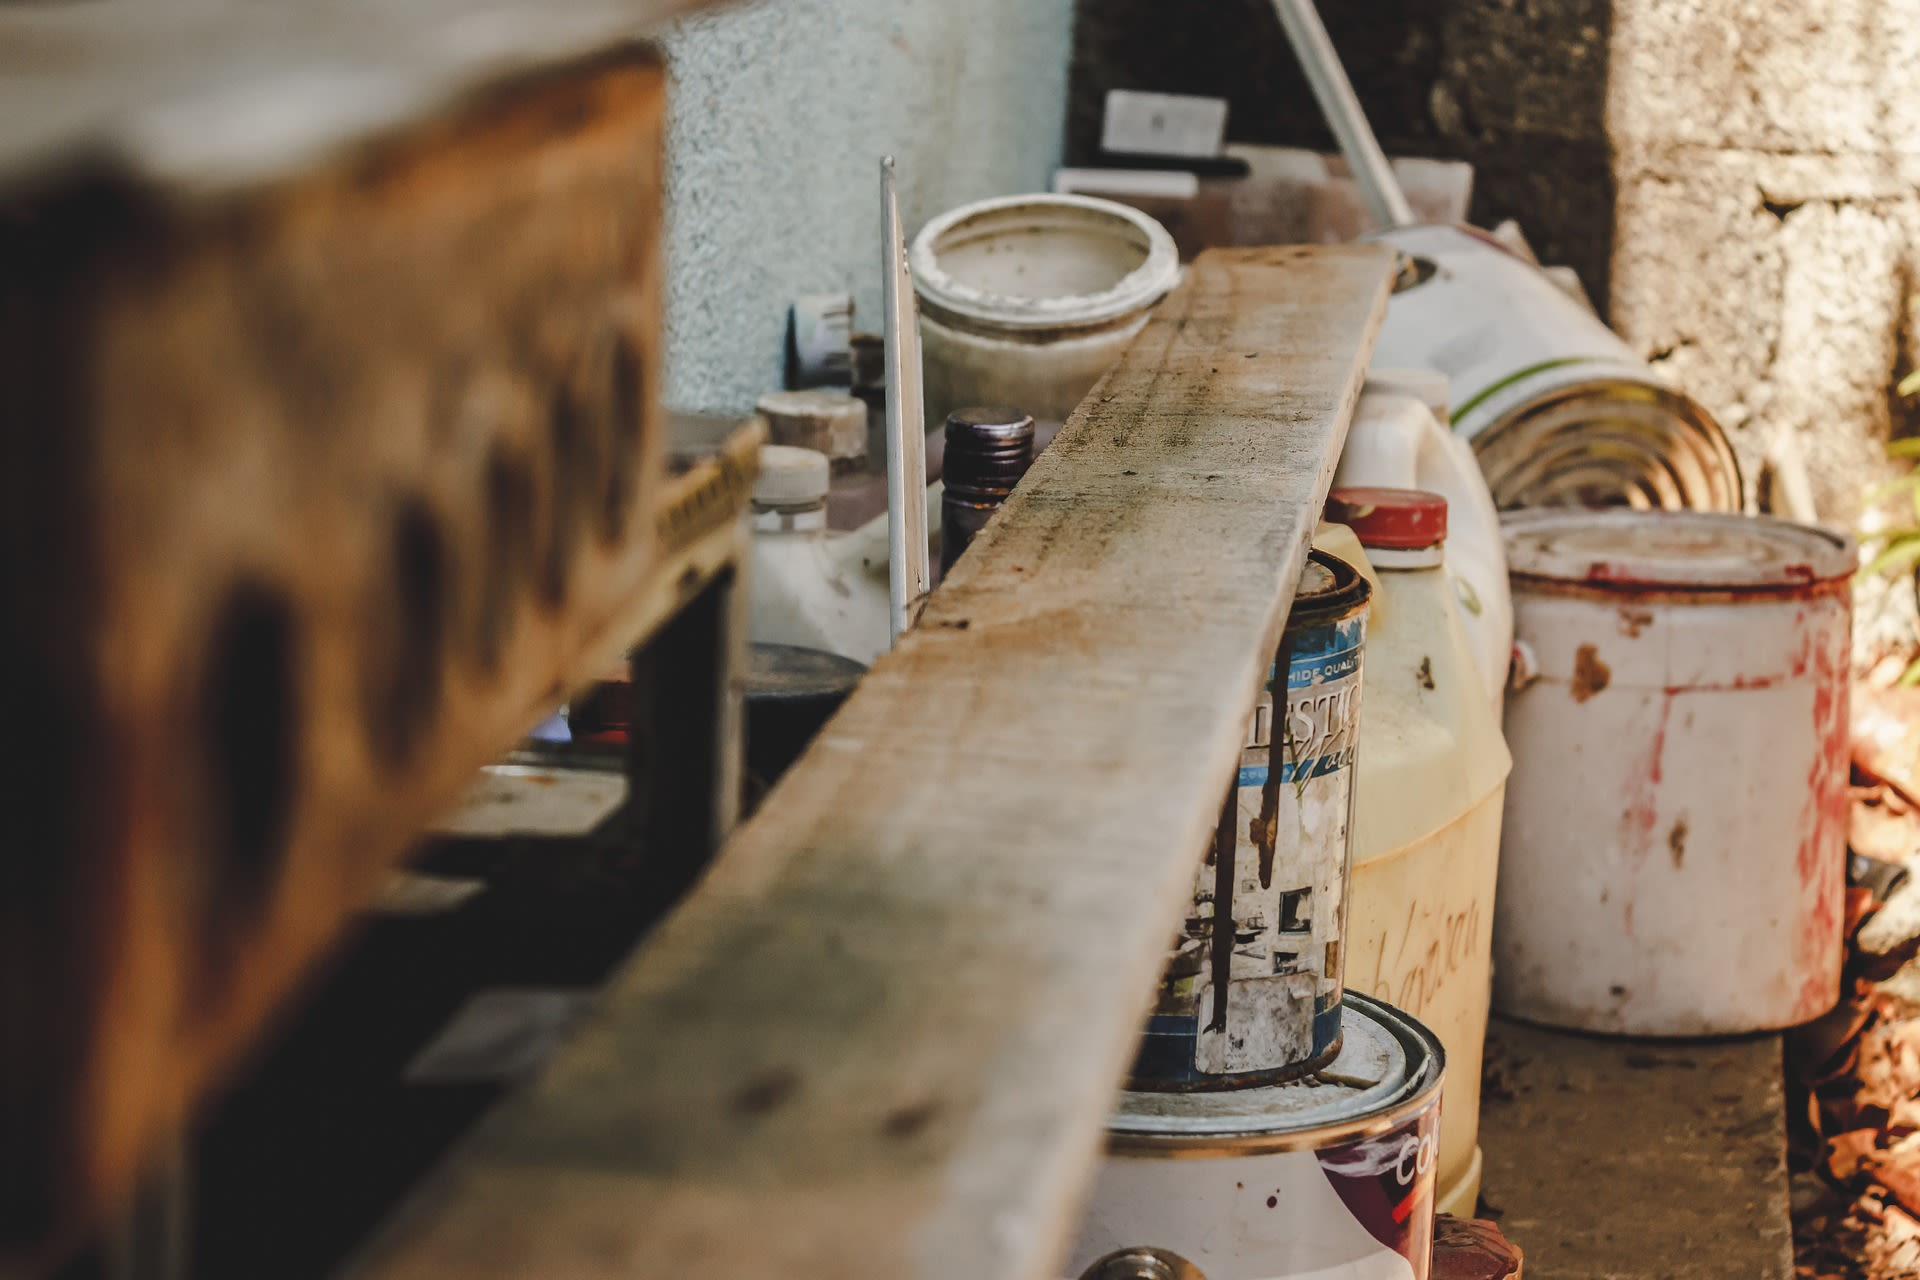 Home Improvement Projects: When to Call a Pro